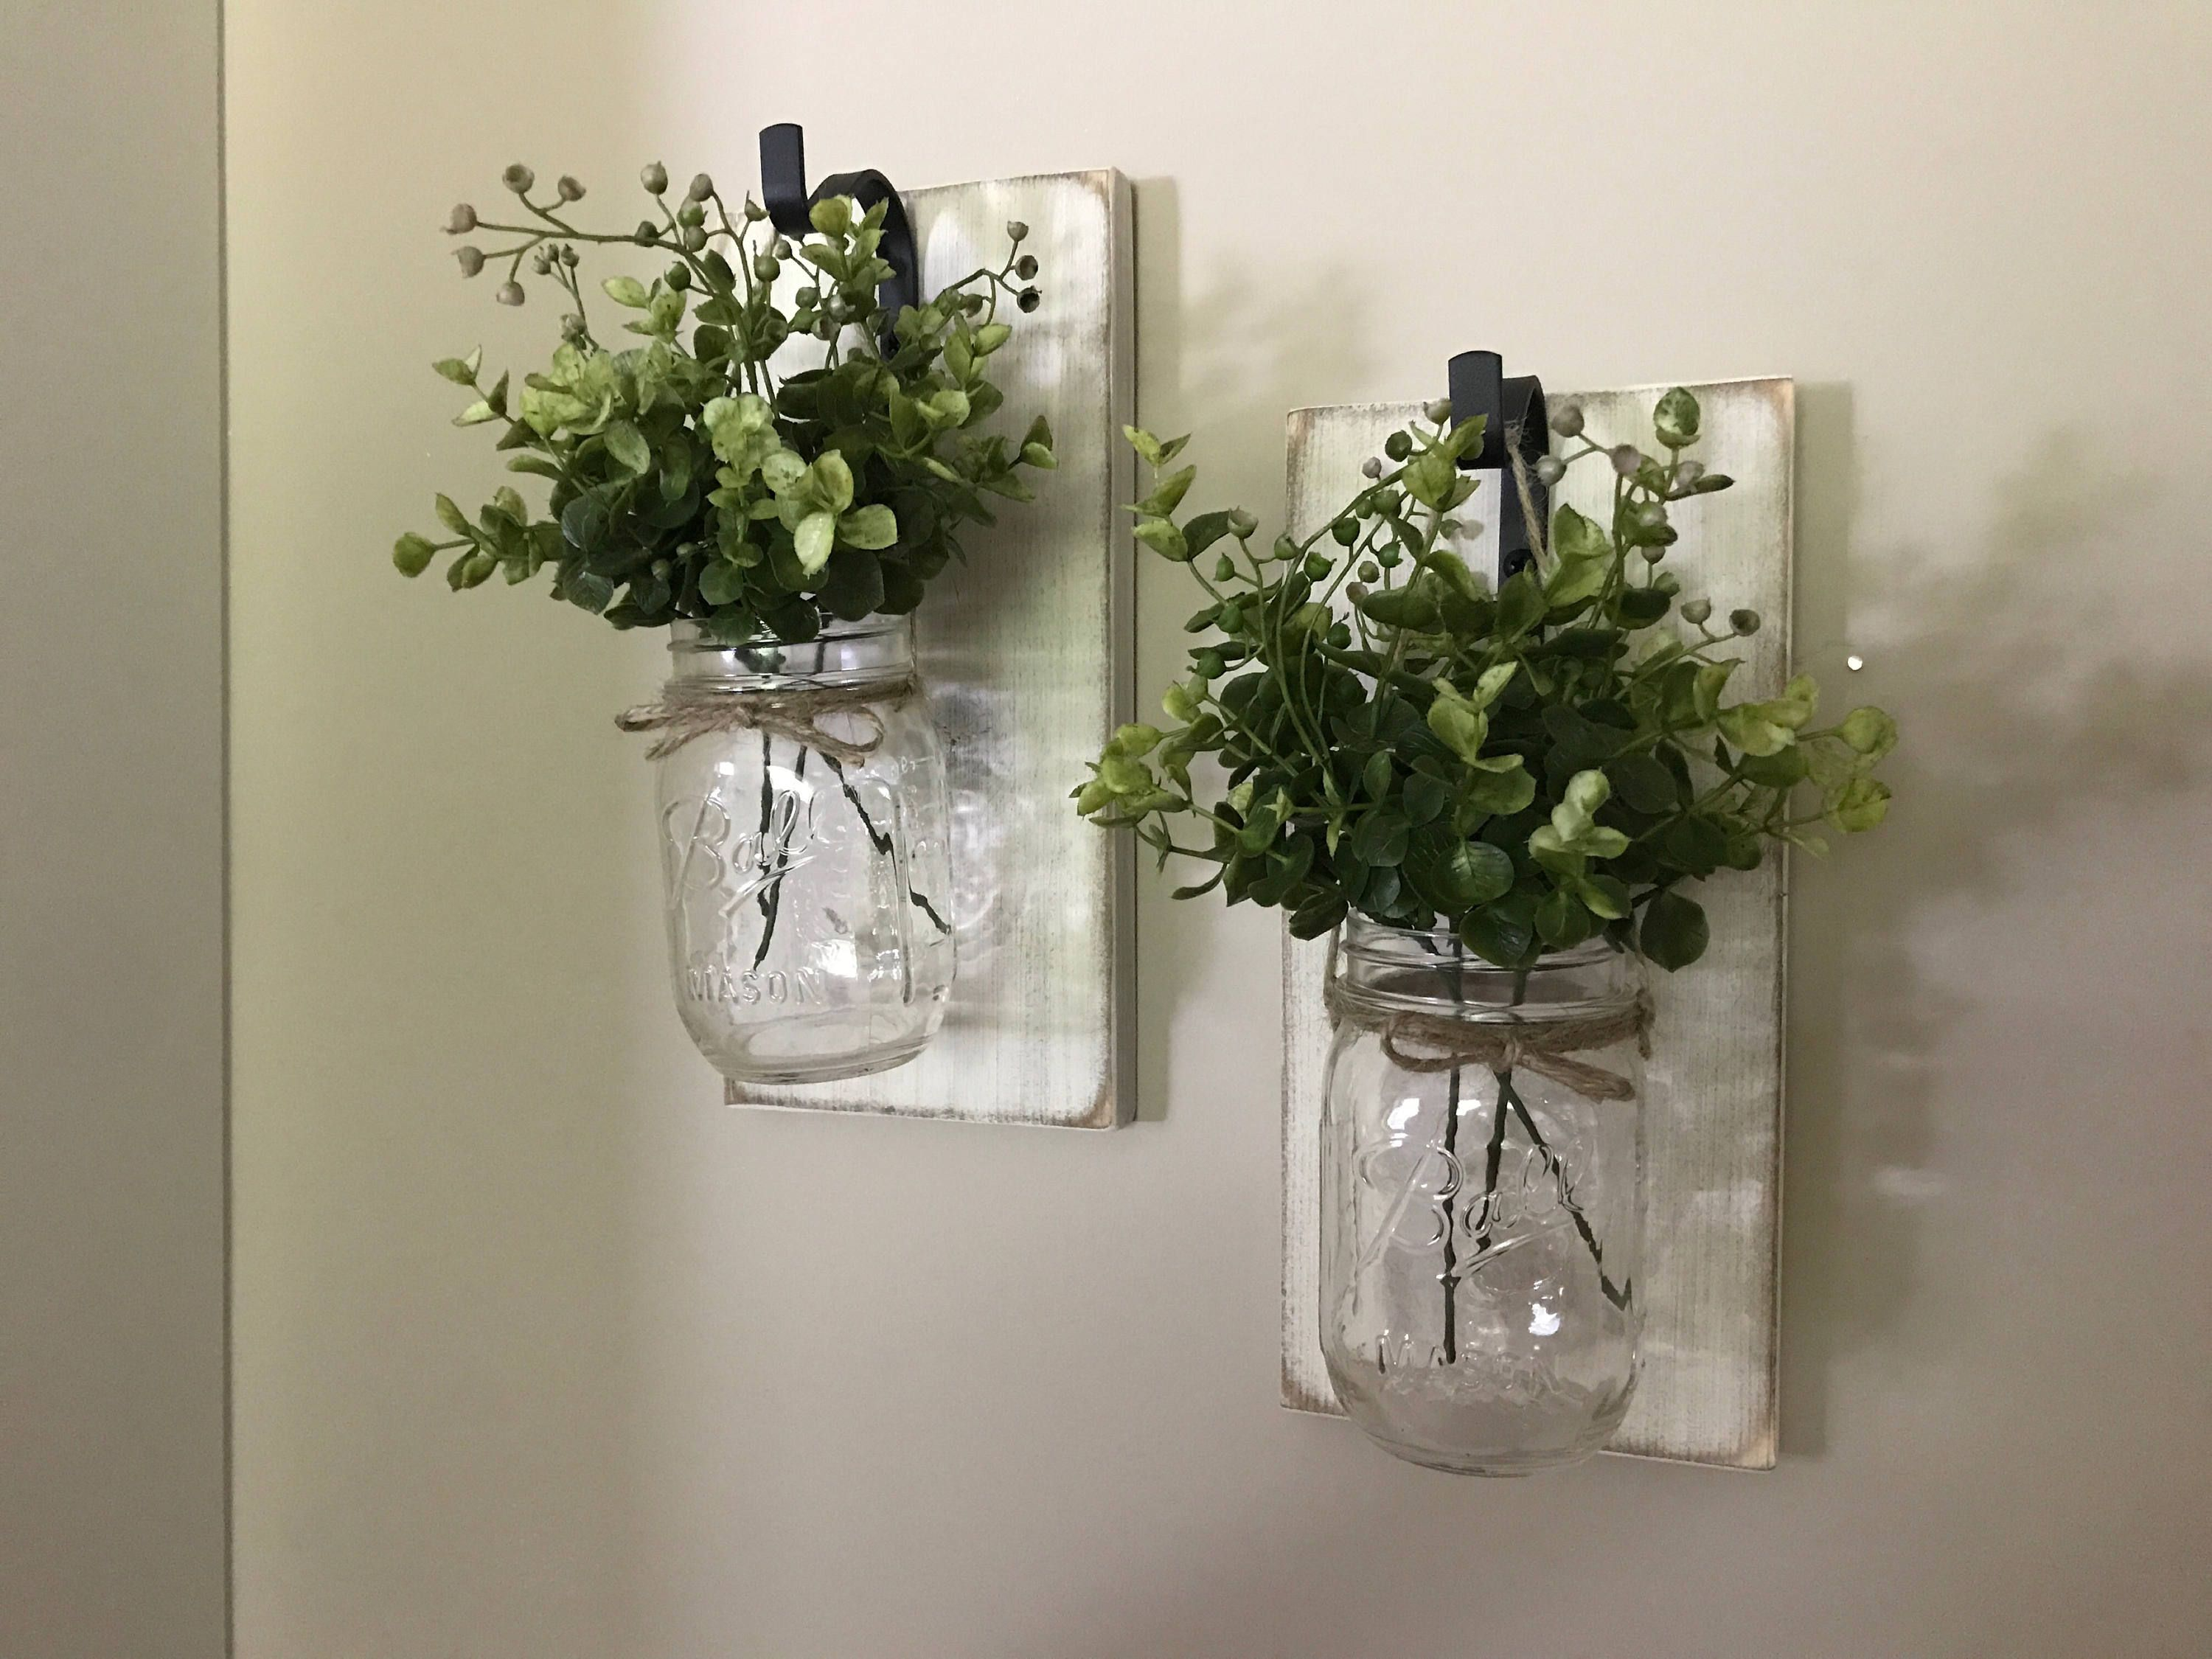 Wedding decorations at home  Rustic Home Decor Home u Living Set of  Hanging Mason Jar Sconces